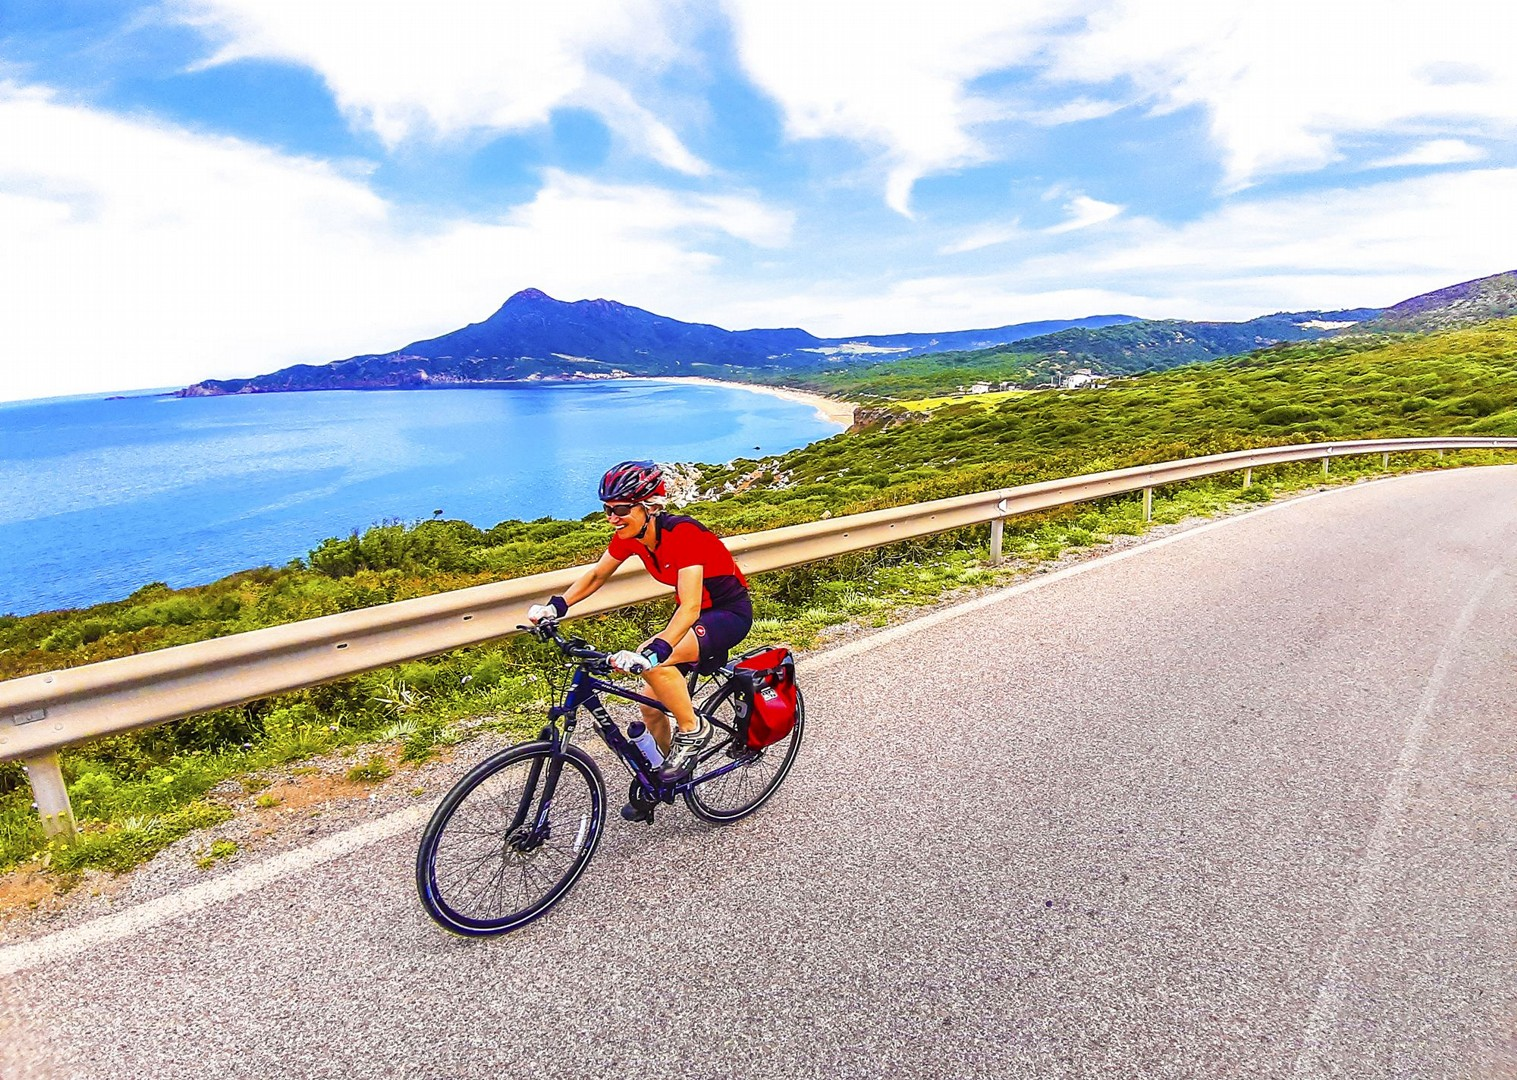 leisure-cycling-island-flavours-holiday-saddle-skedaddle-sardinia.jpg - Italy - Sardinia - Island Flavours - Guided Leisure Cycling Holiday - Leisure Cycling